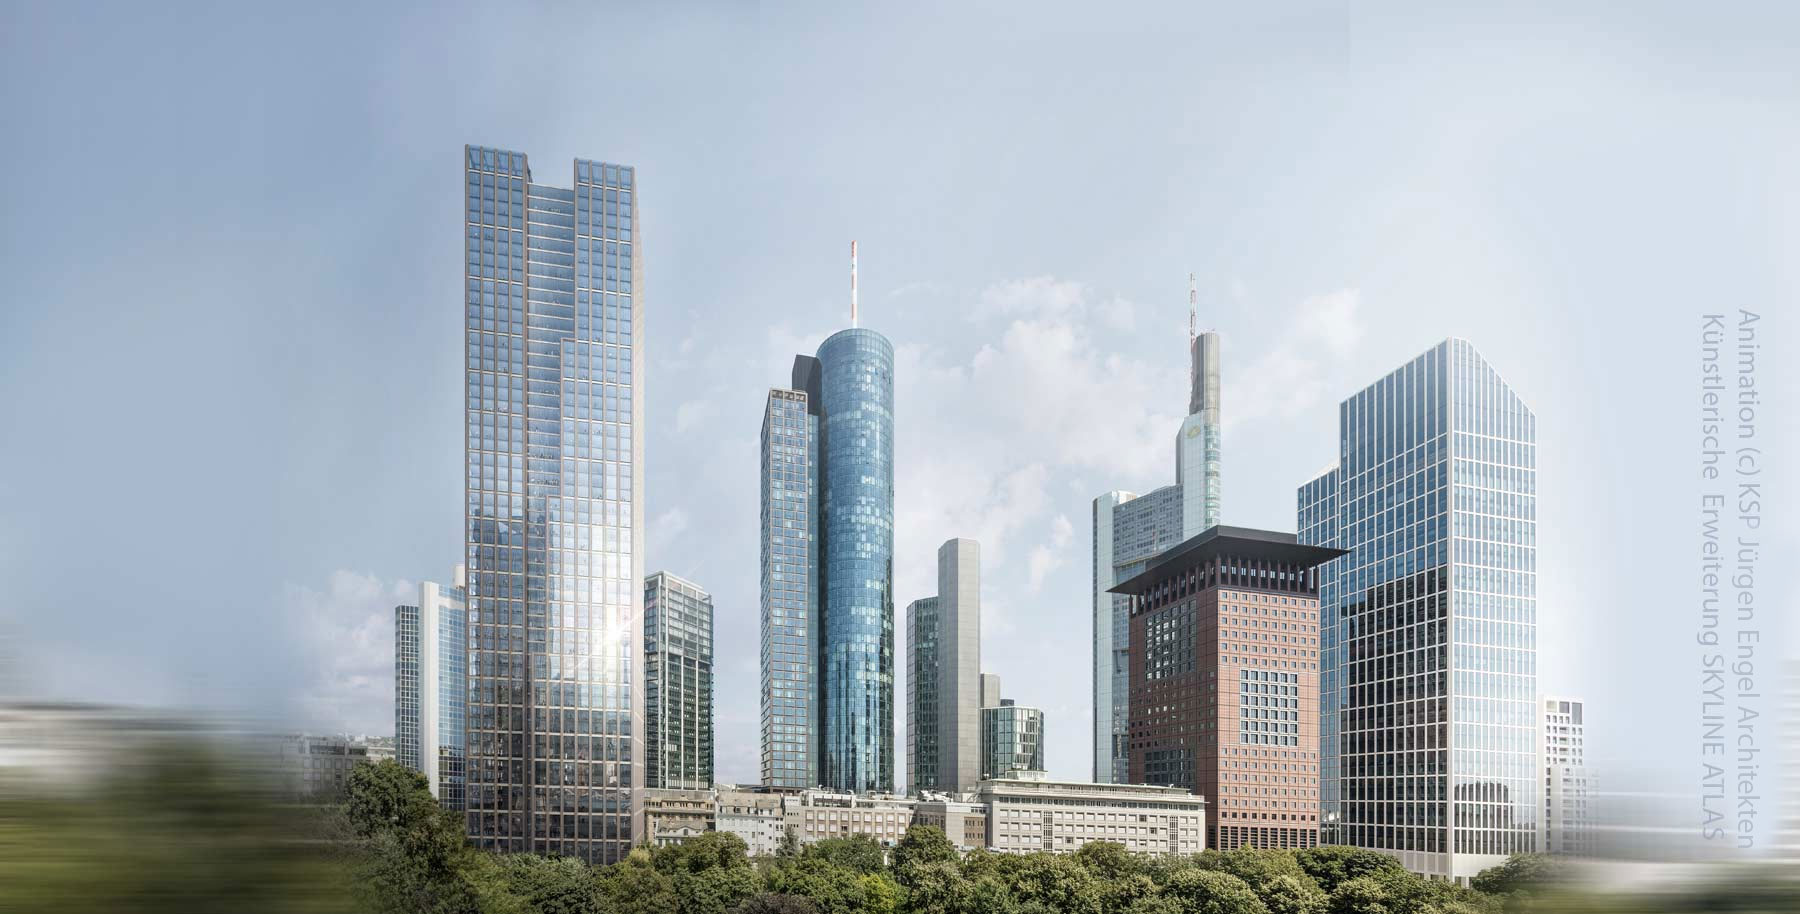 Helaba skyscraper in Frankfurt Germany - former Frankfurter Sparkasse 1822 and Württemberger Hypothekenbank project - KSP Jürgen Engel Architects - Animation 2019 - proposed office tower